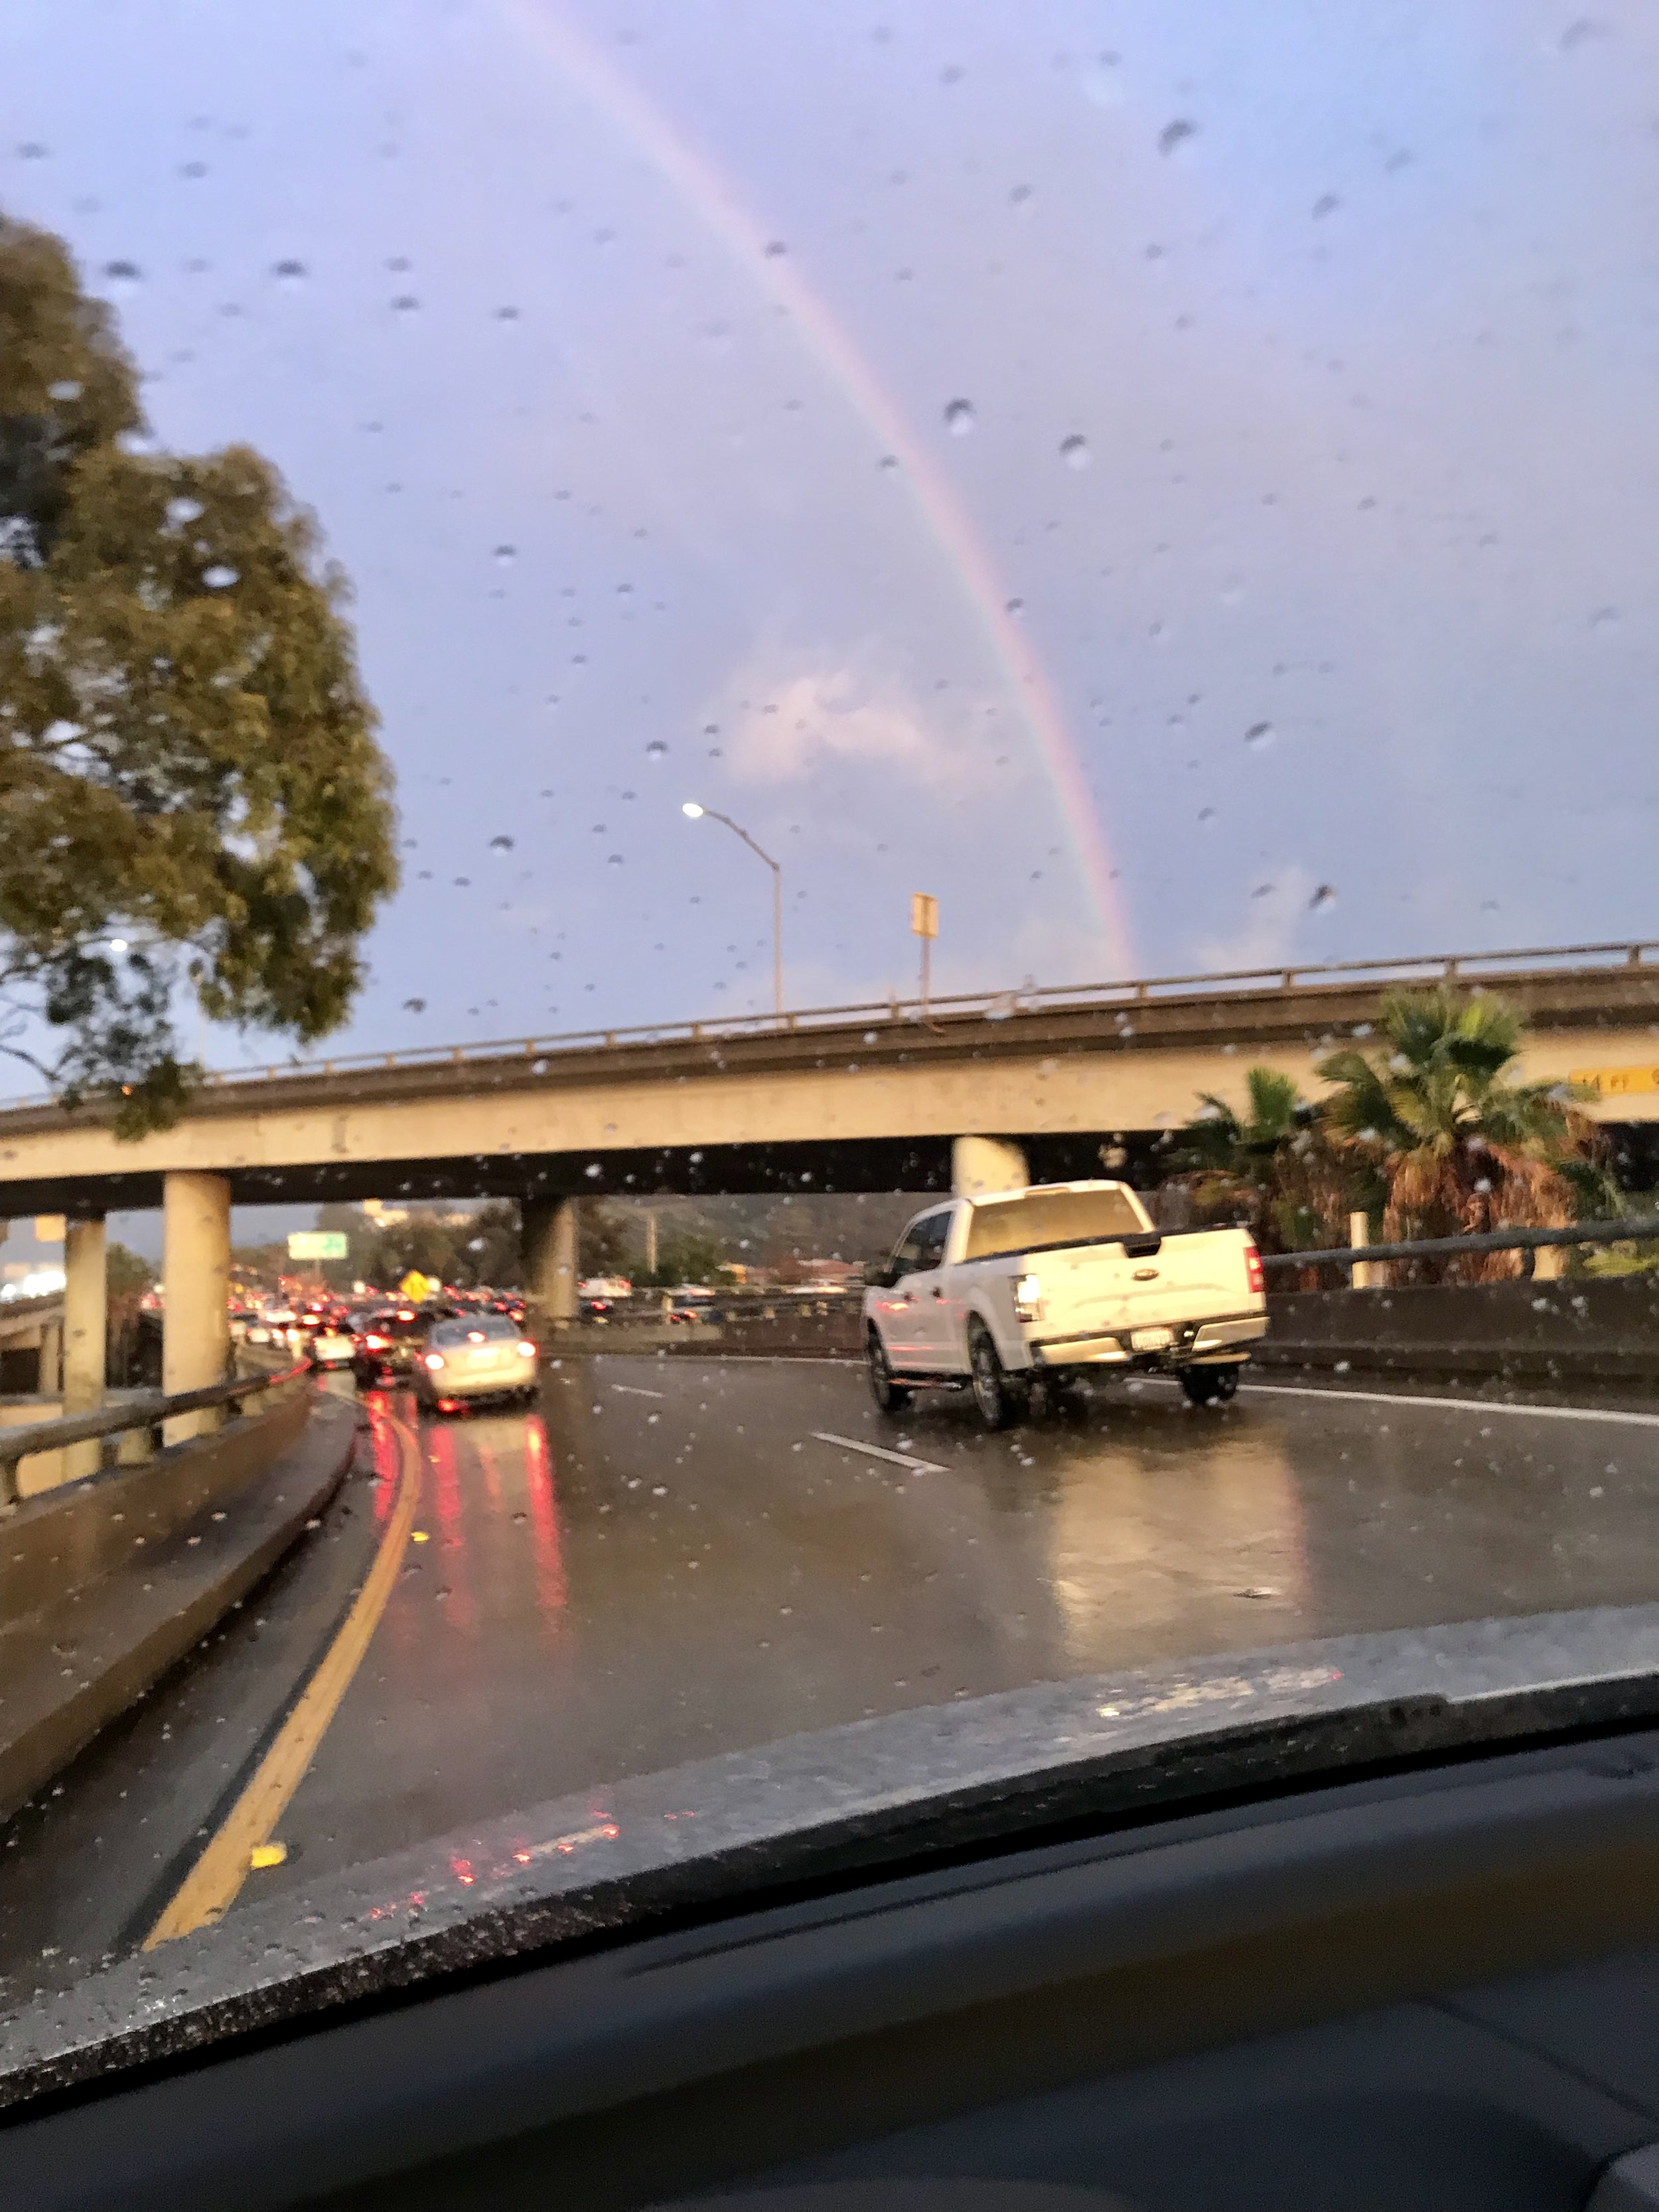 Gorgeous rainbow at the end of a really sh*tty drive.